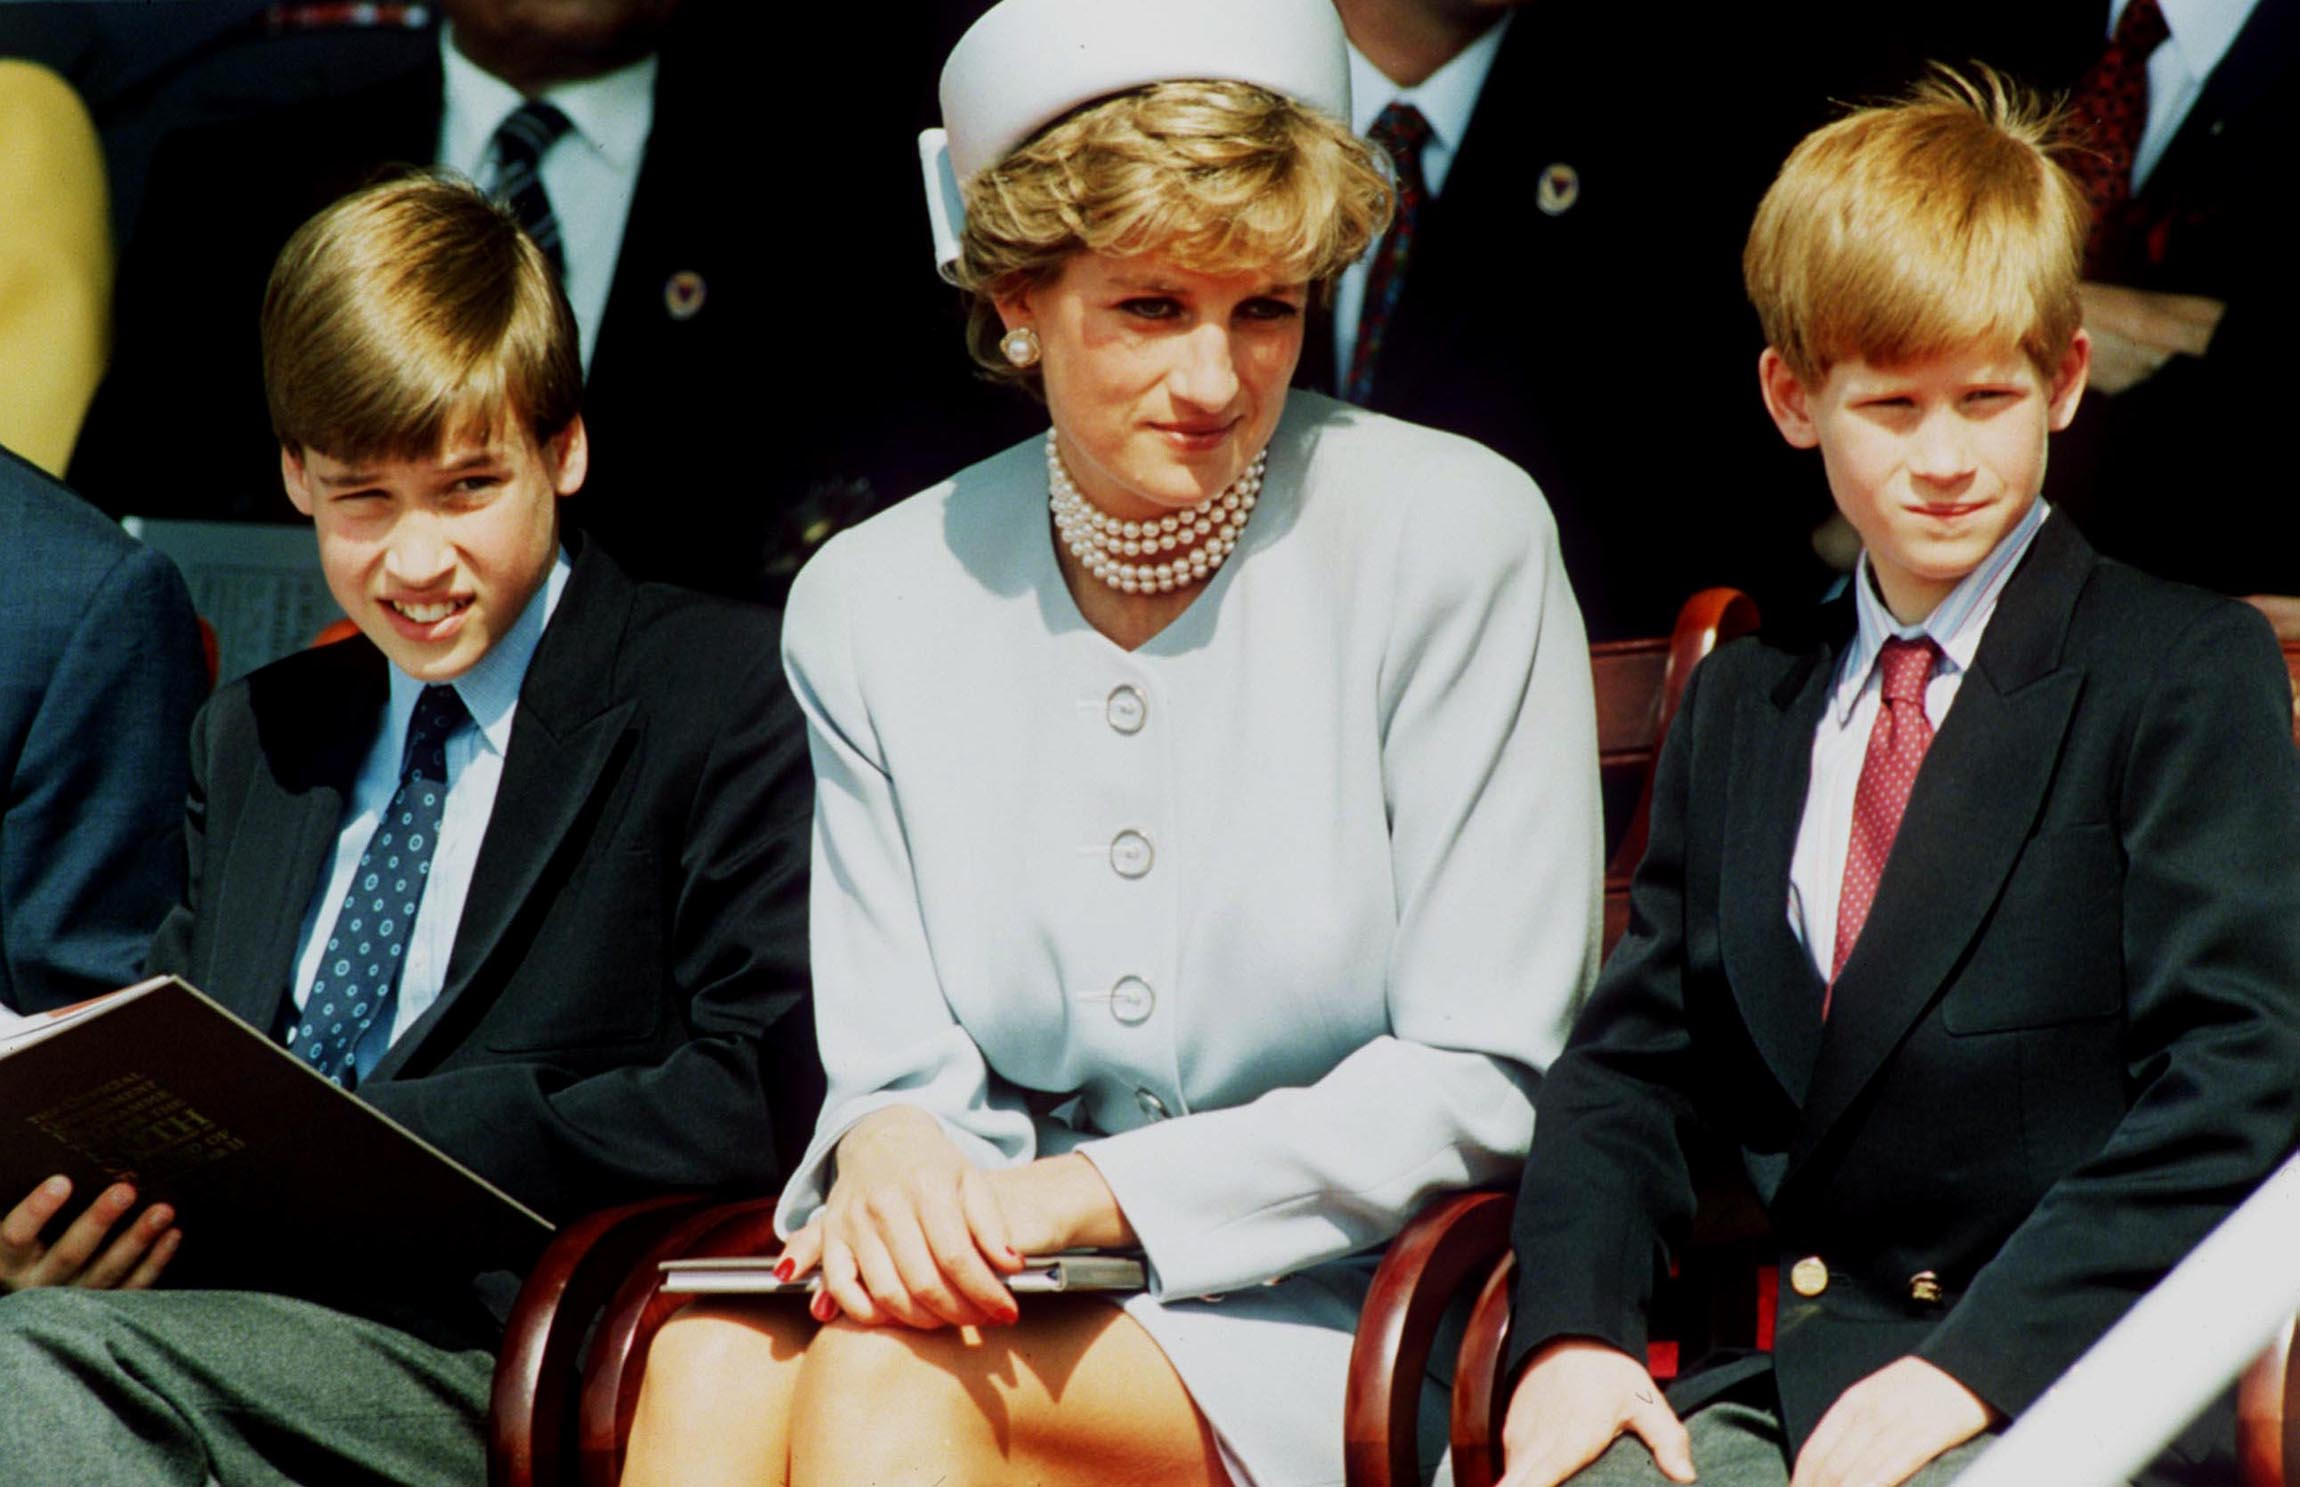 Princess Diana and her sons Prince William and Prince Harry attend the Heads of State VE Remembrance Service in Hyde Park on May 7, 1995, in London, England. | Source: Getty Images.